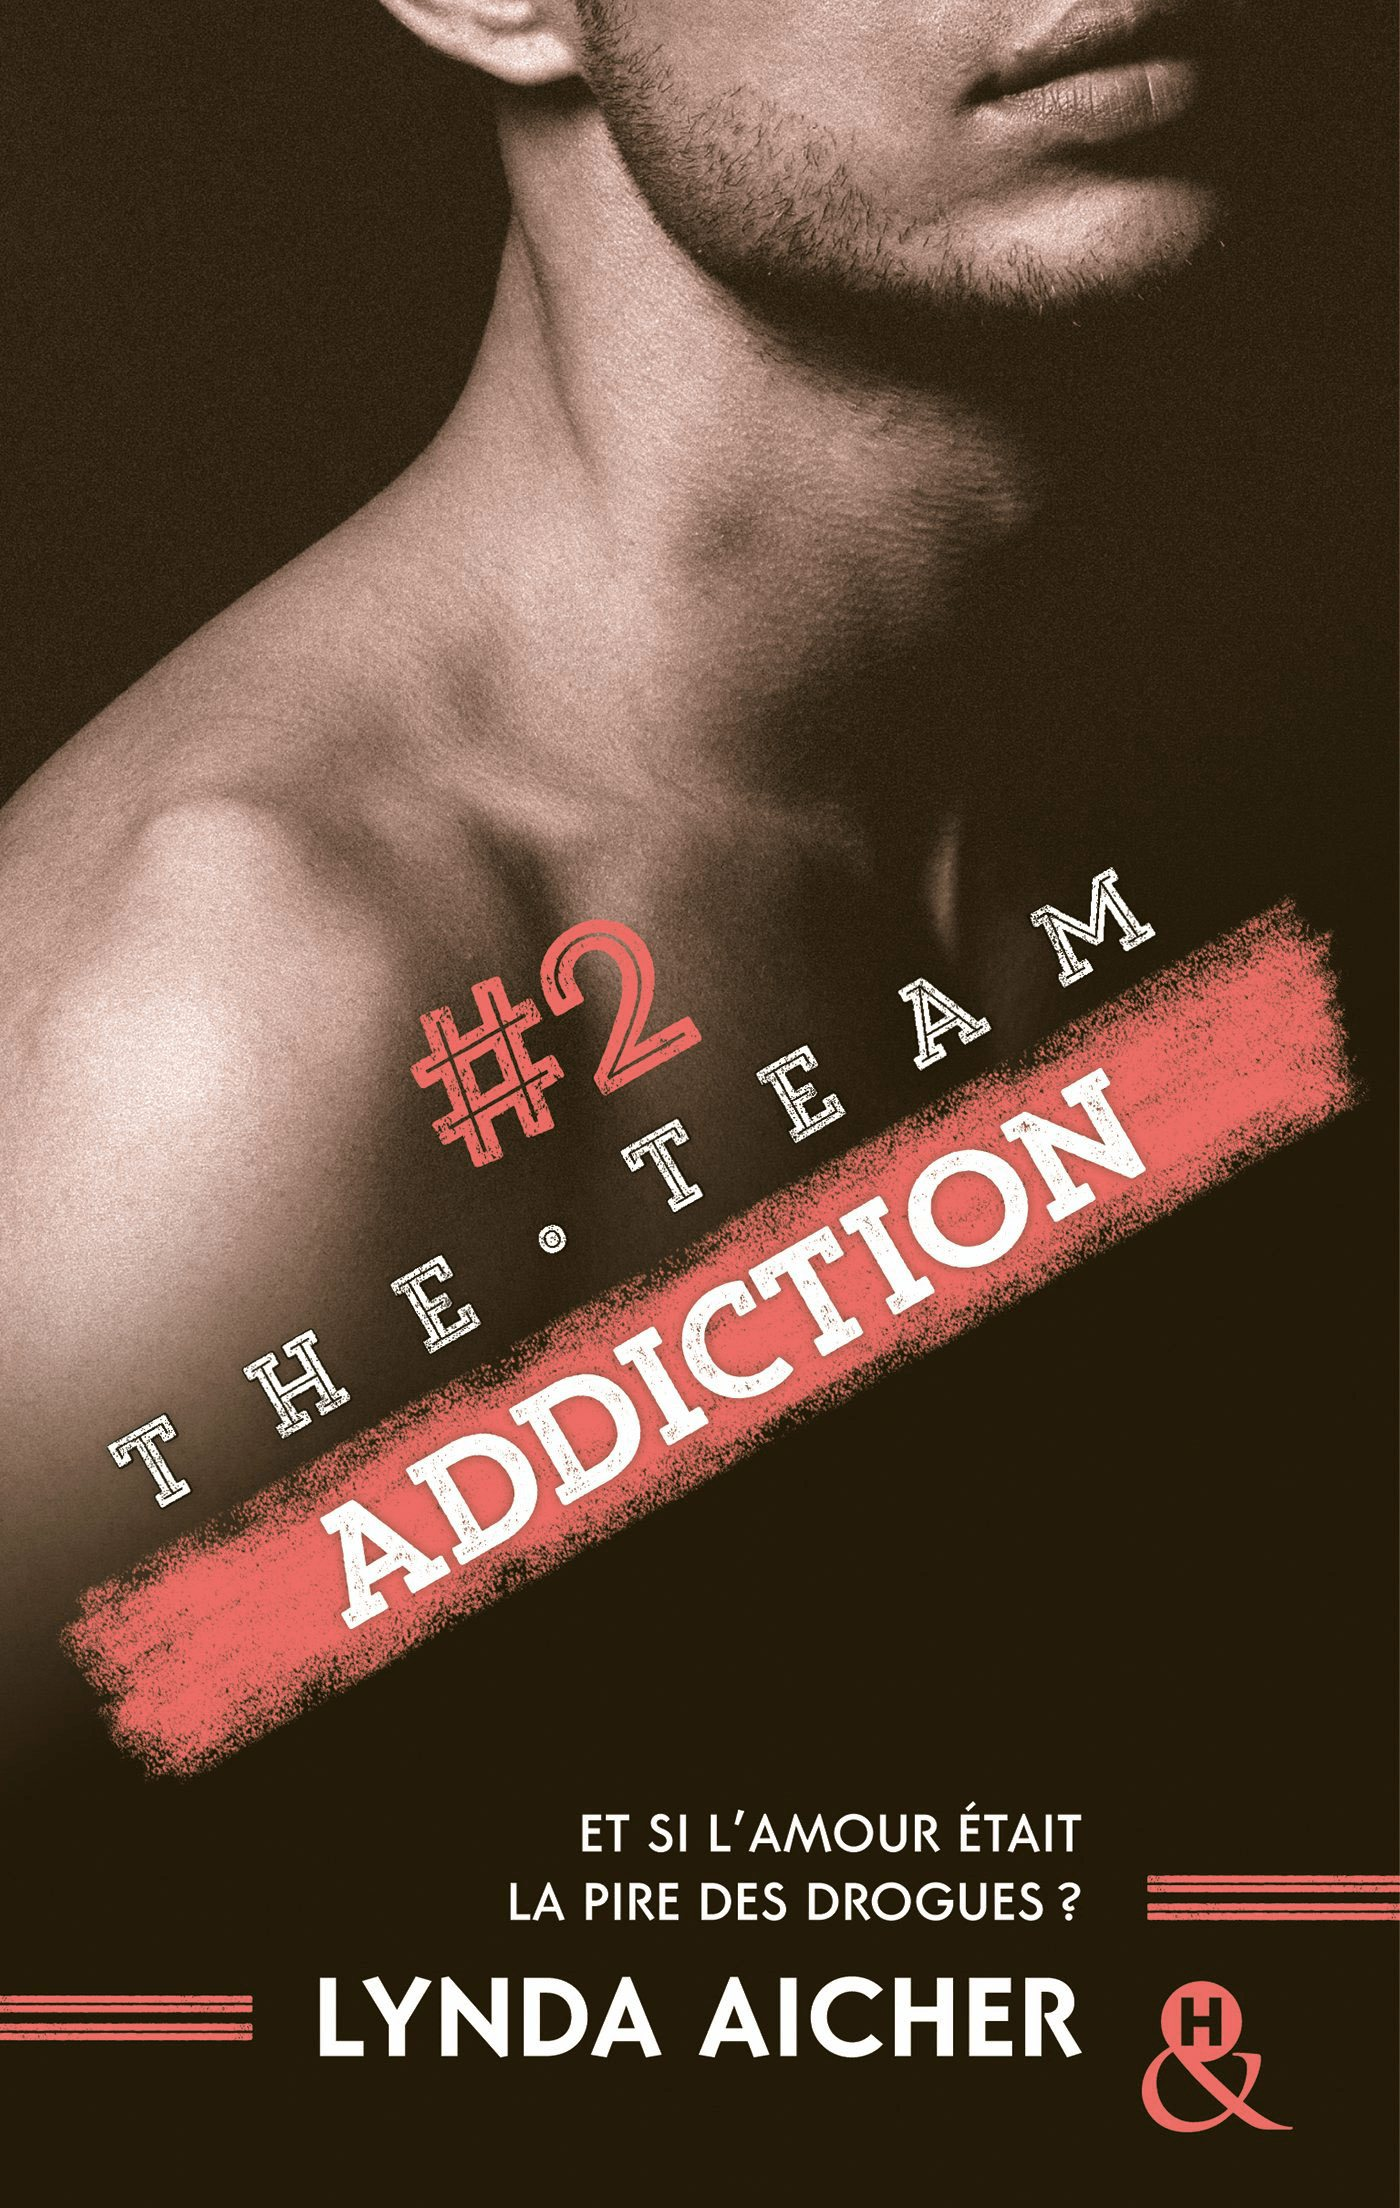 Couverture : Lynda Aicher, The Team : Addiction, Harlequin